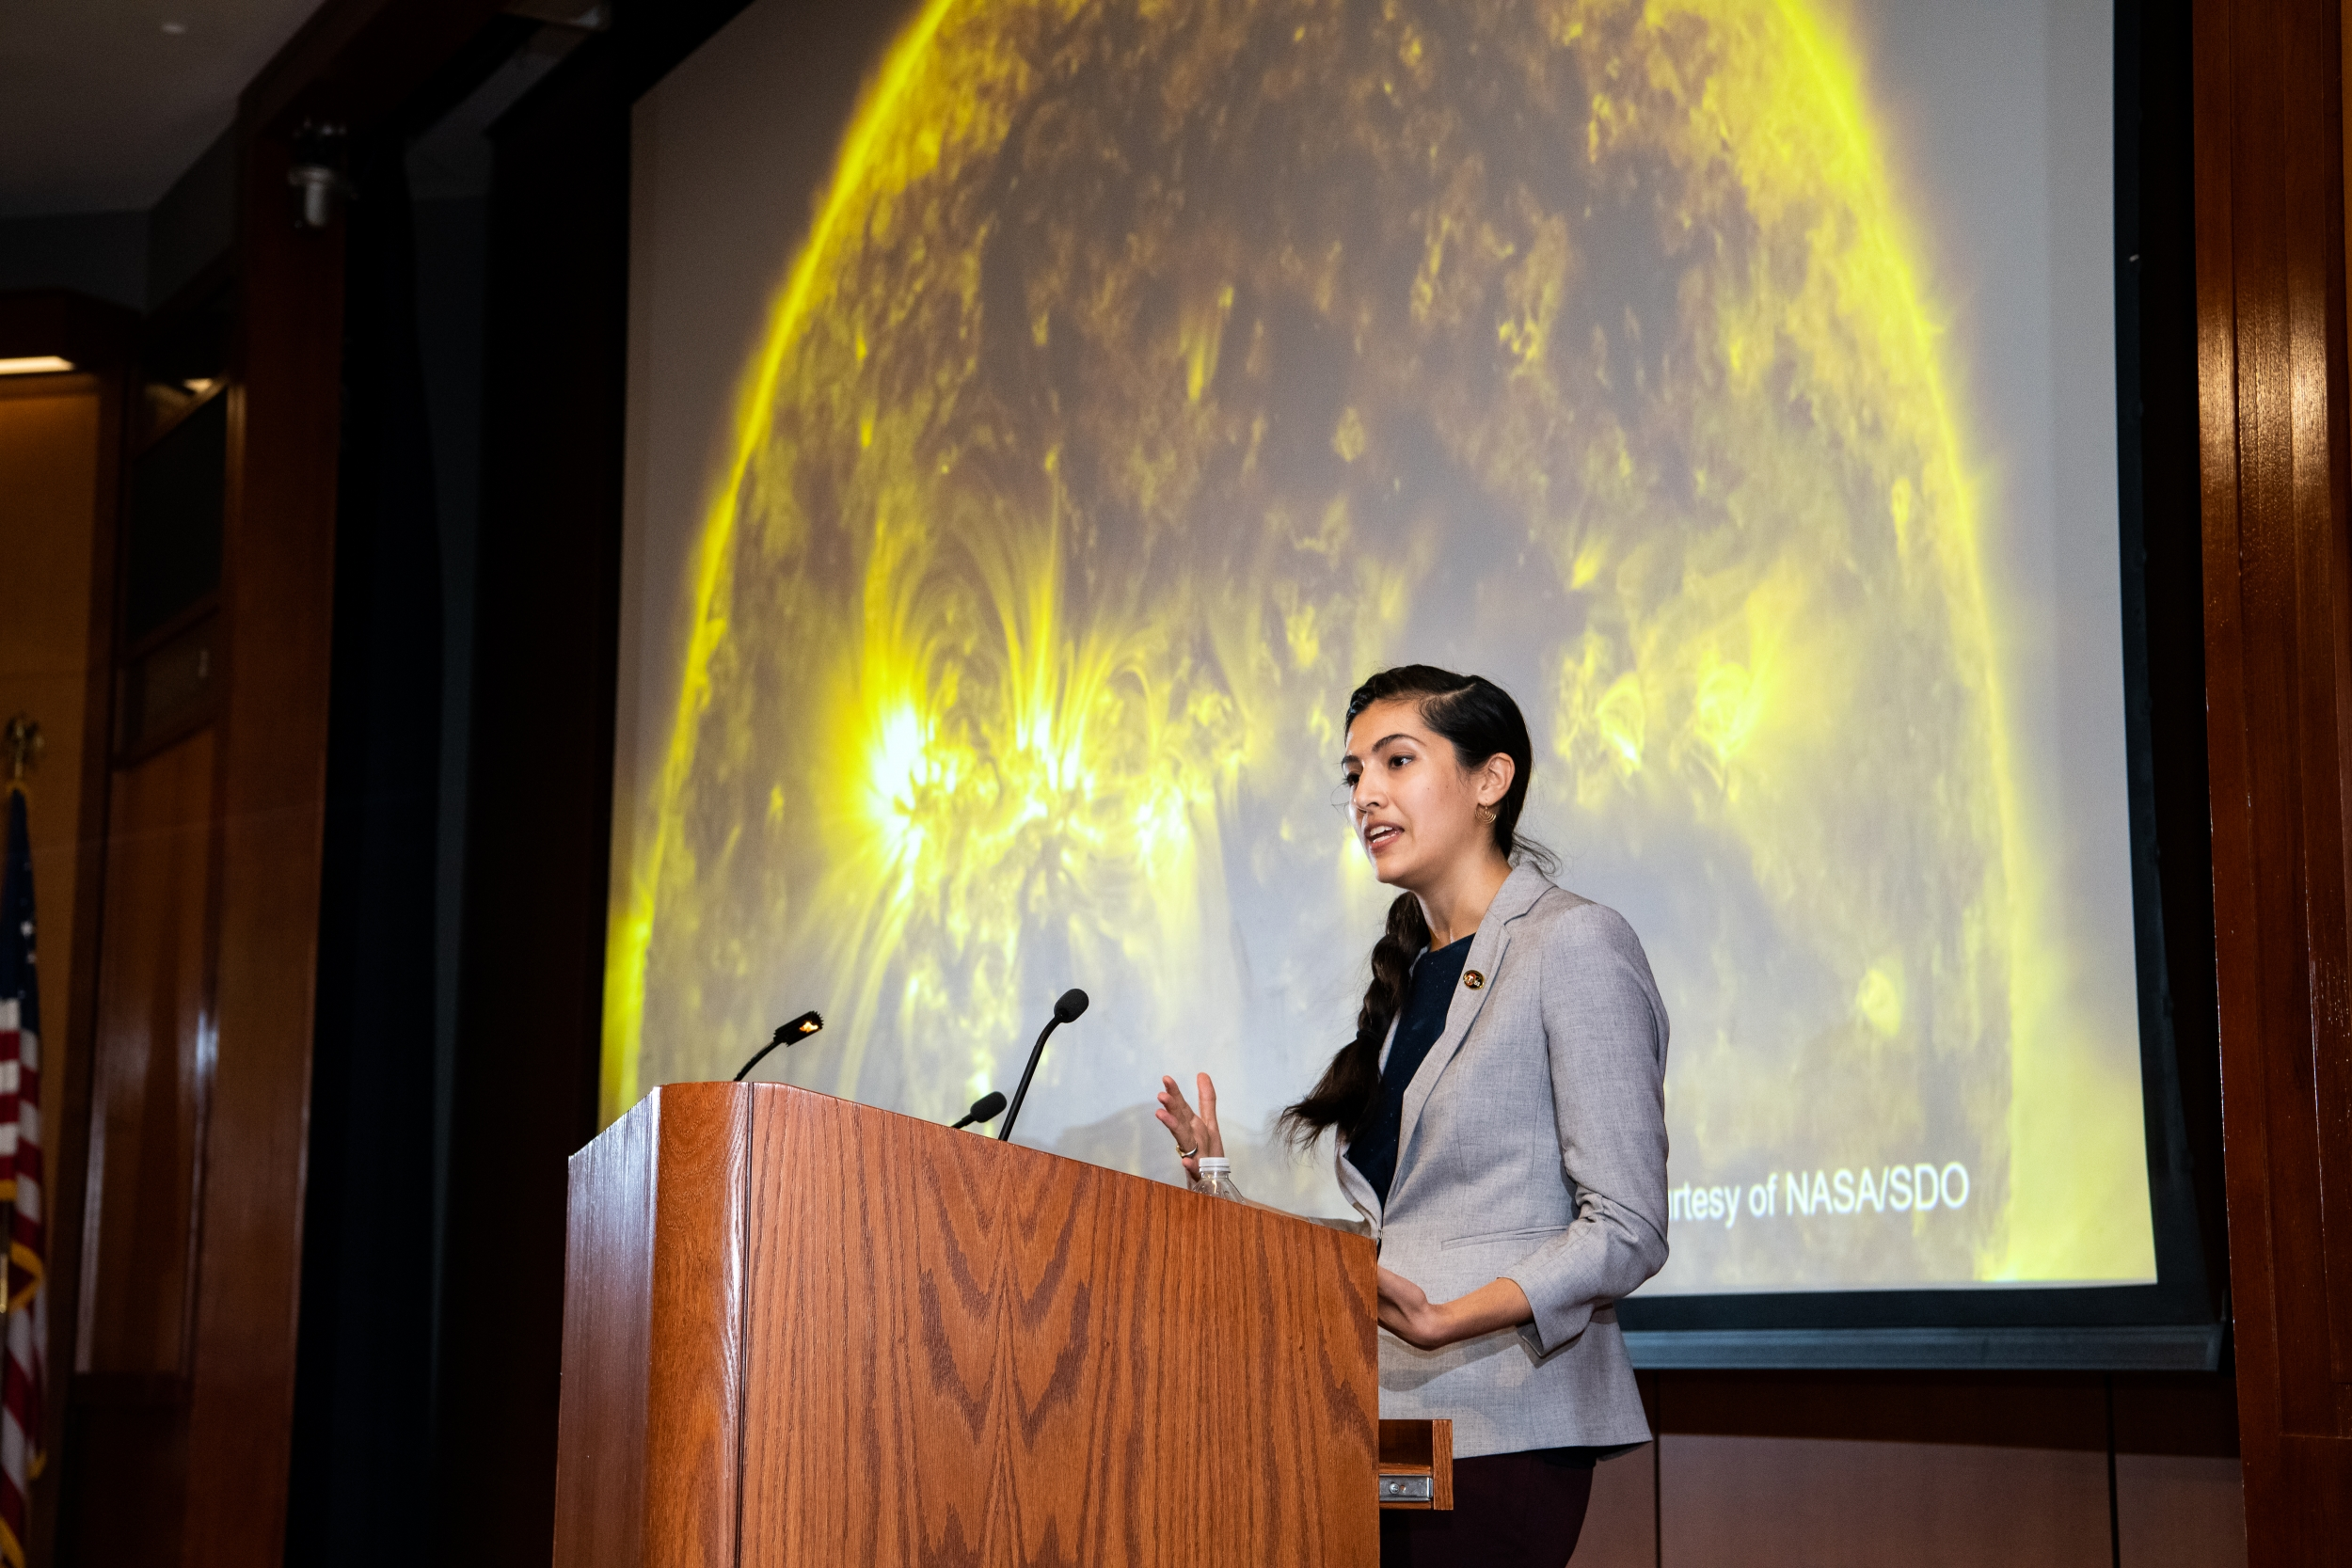 Natalia Guerrero stands at the lecturn and gives her keynote speech in front of a large image of a sun